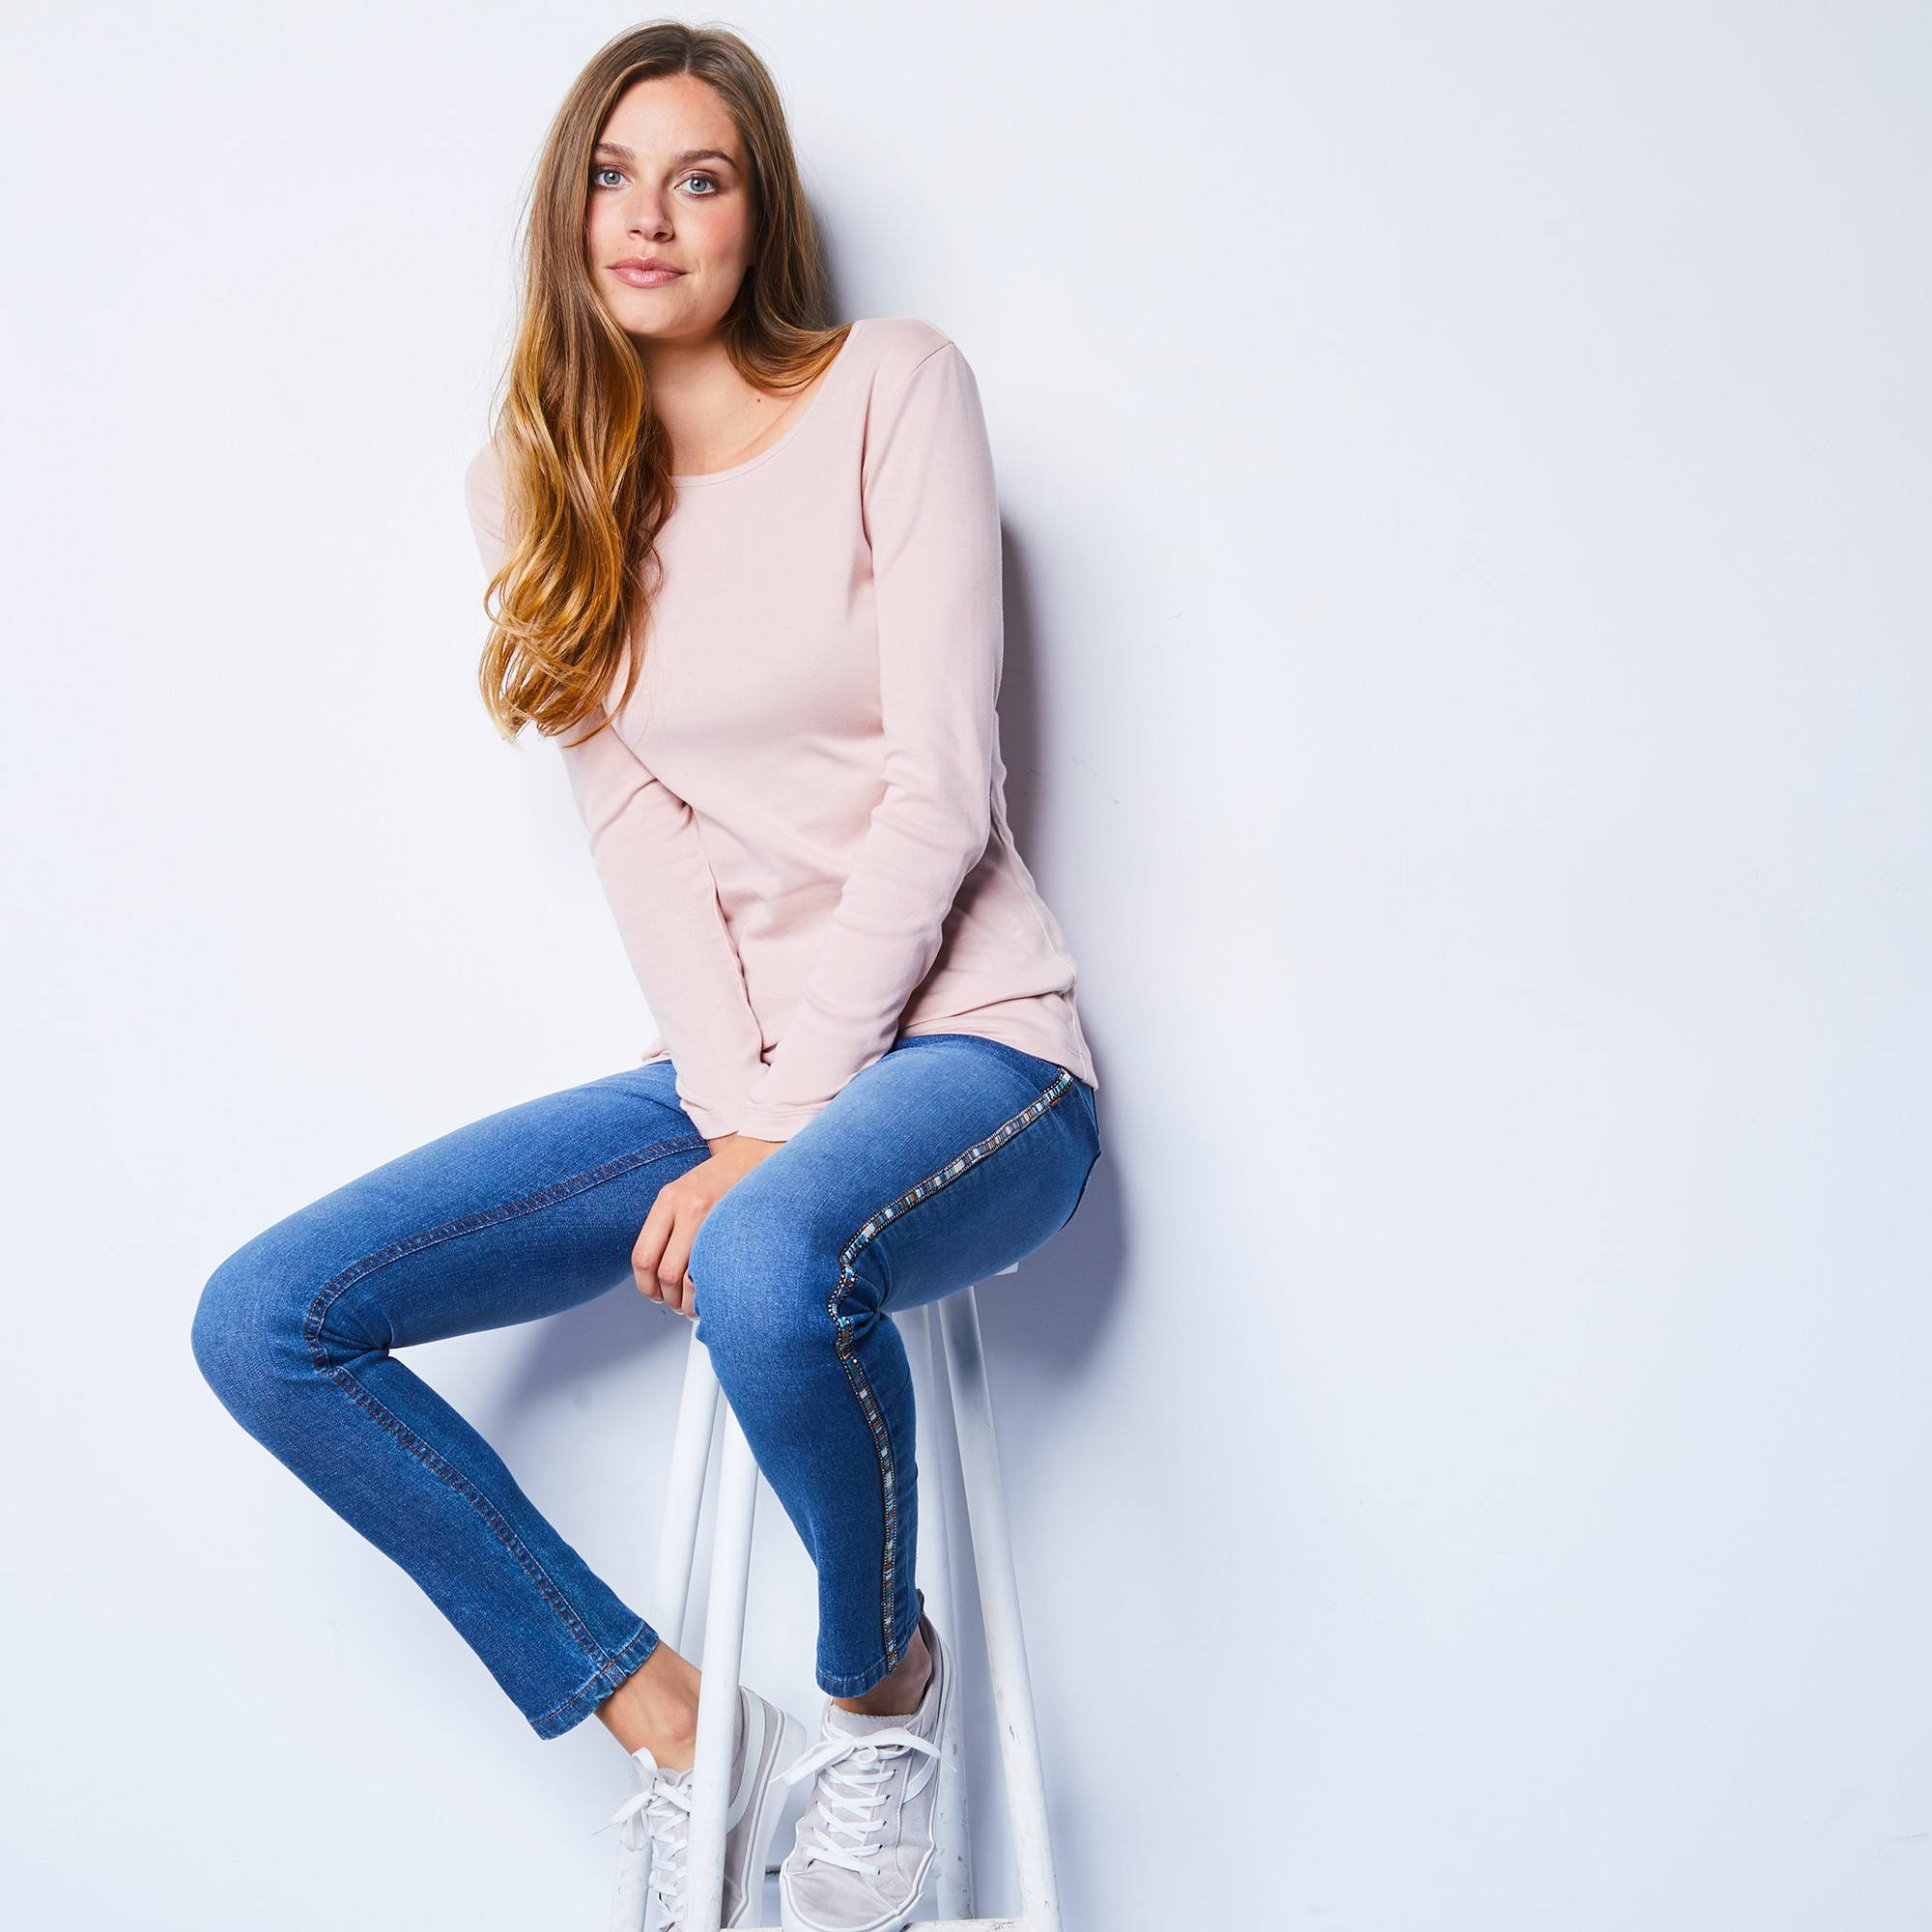 Tee-shirt manches longues - rose poudré - Rose - Taille : 46,48 - Blancheporte